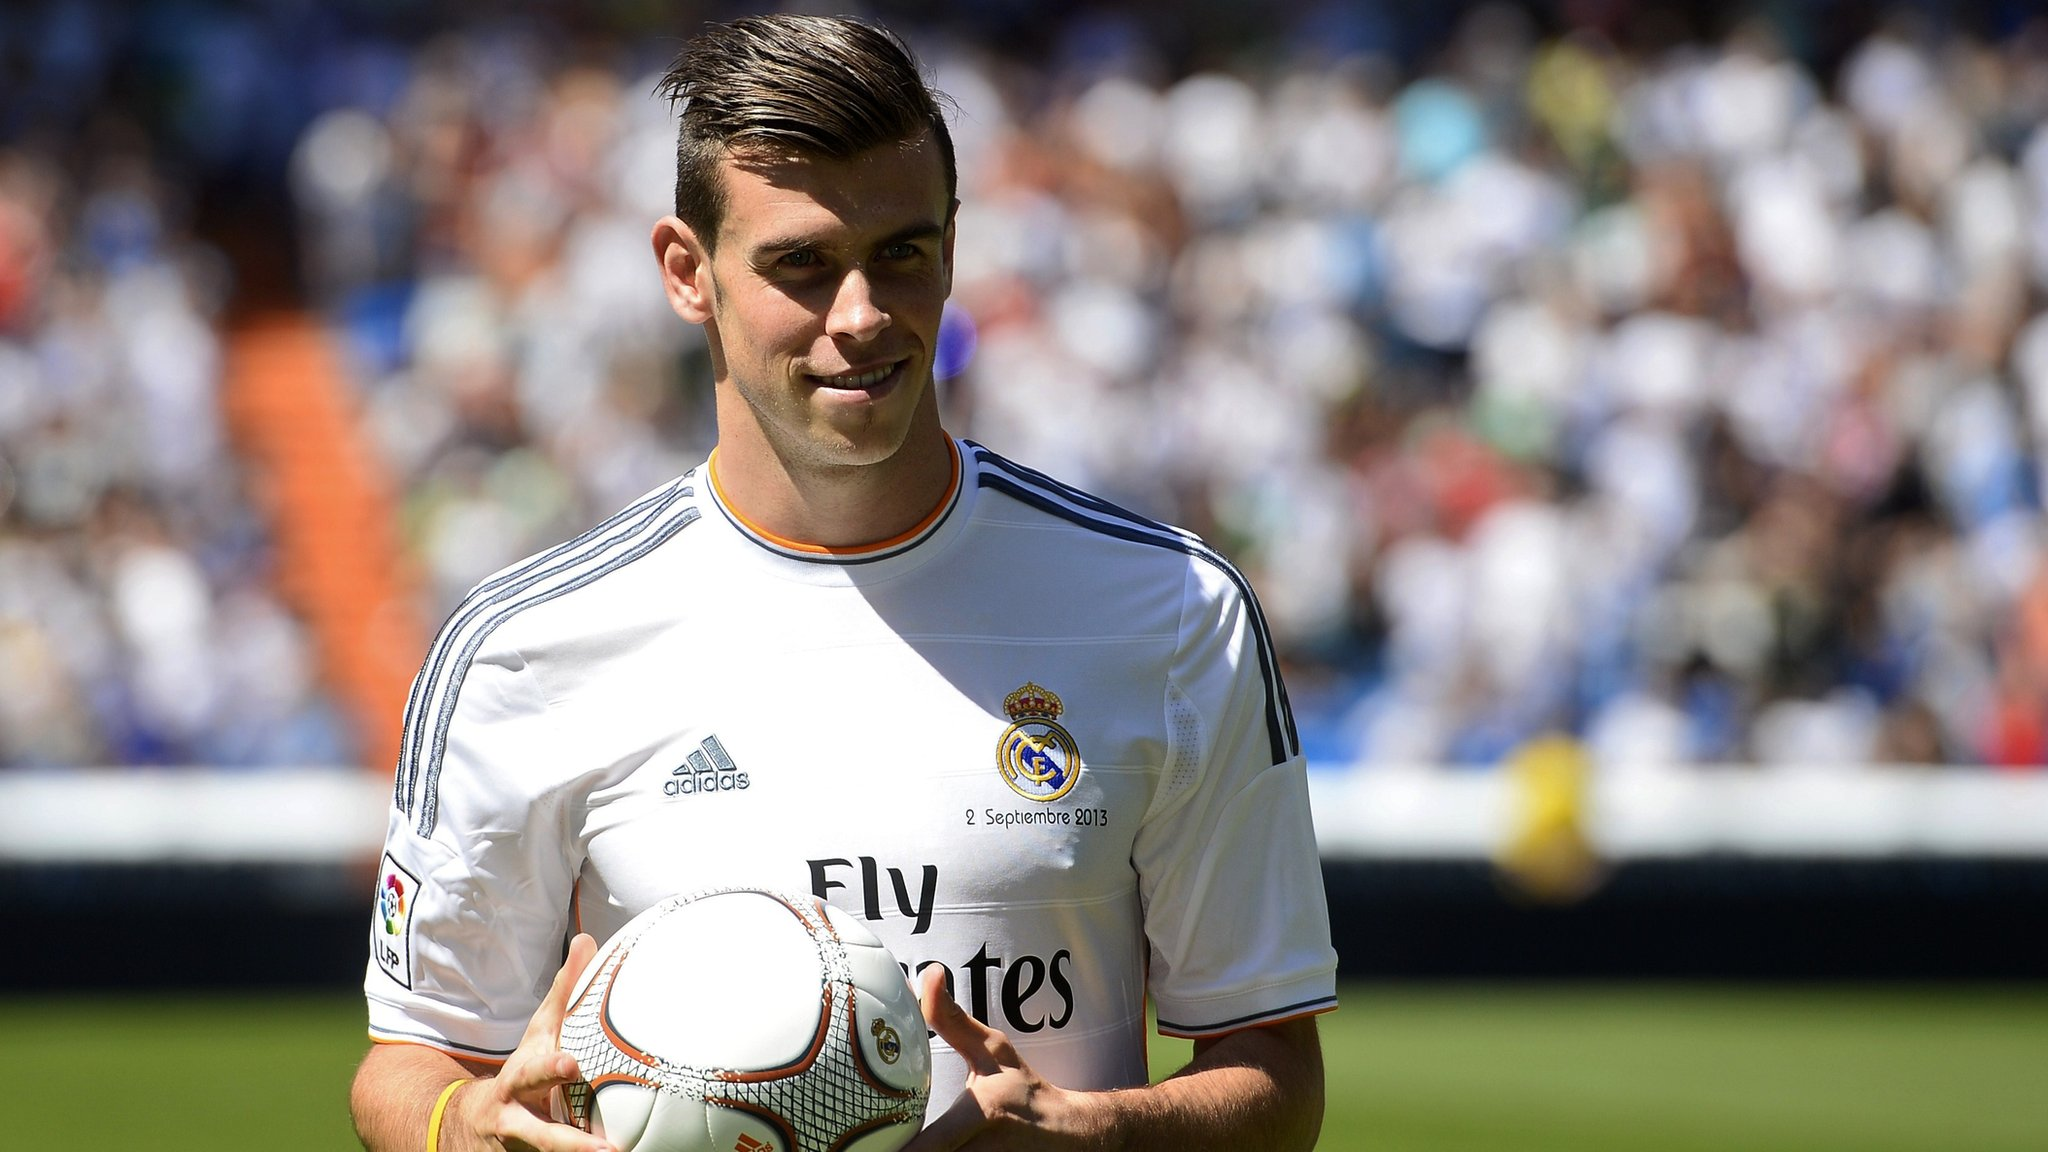 8f0b9c3a2 Gareth Bale signs for Real Madrid in record £85m deal - CBBC Newsround